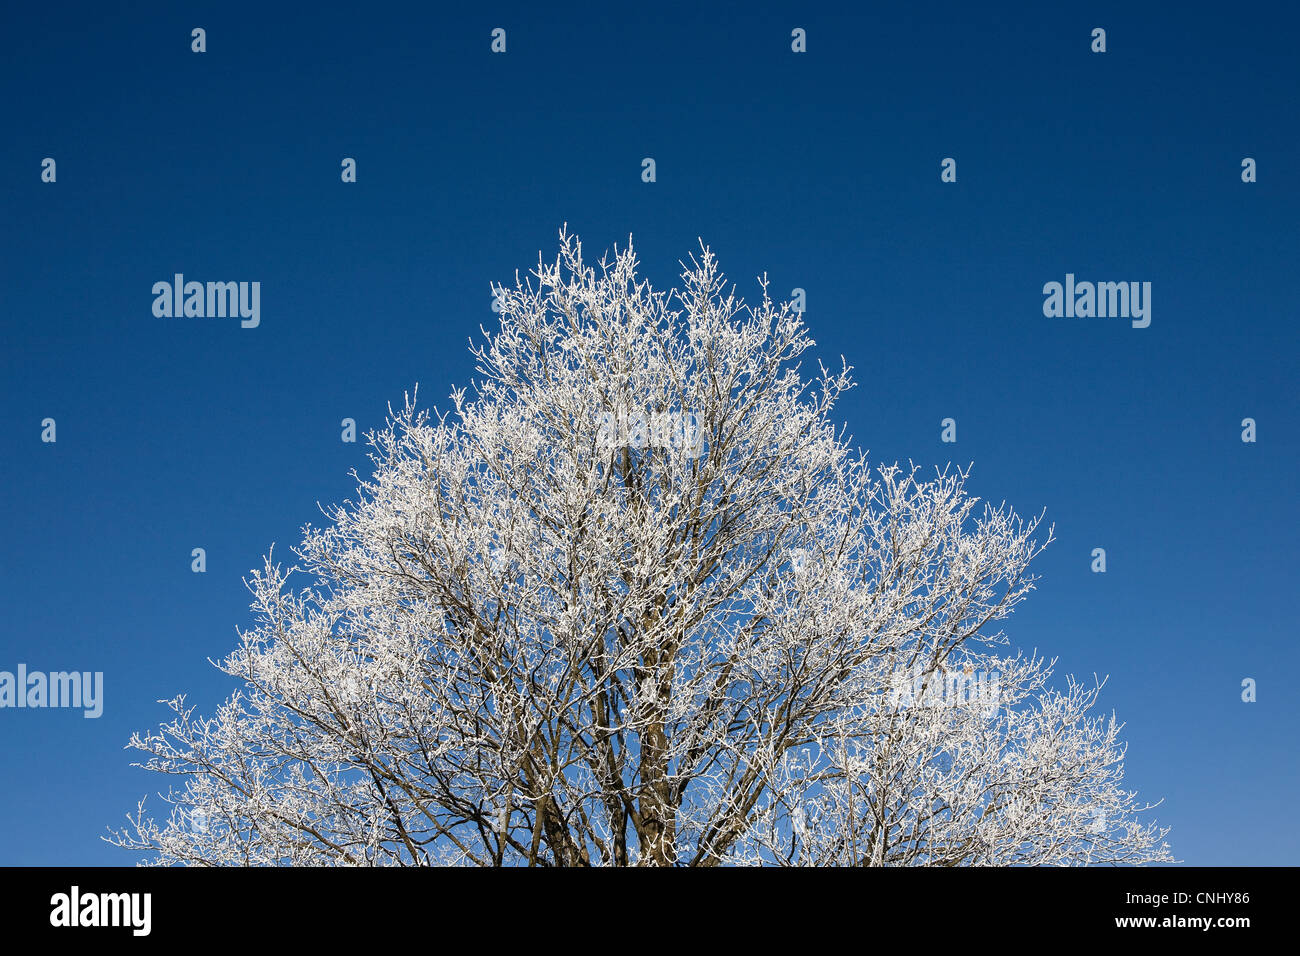 Tree covered in hoar frost Stock Photo